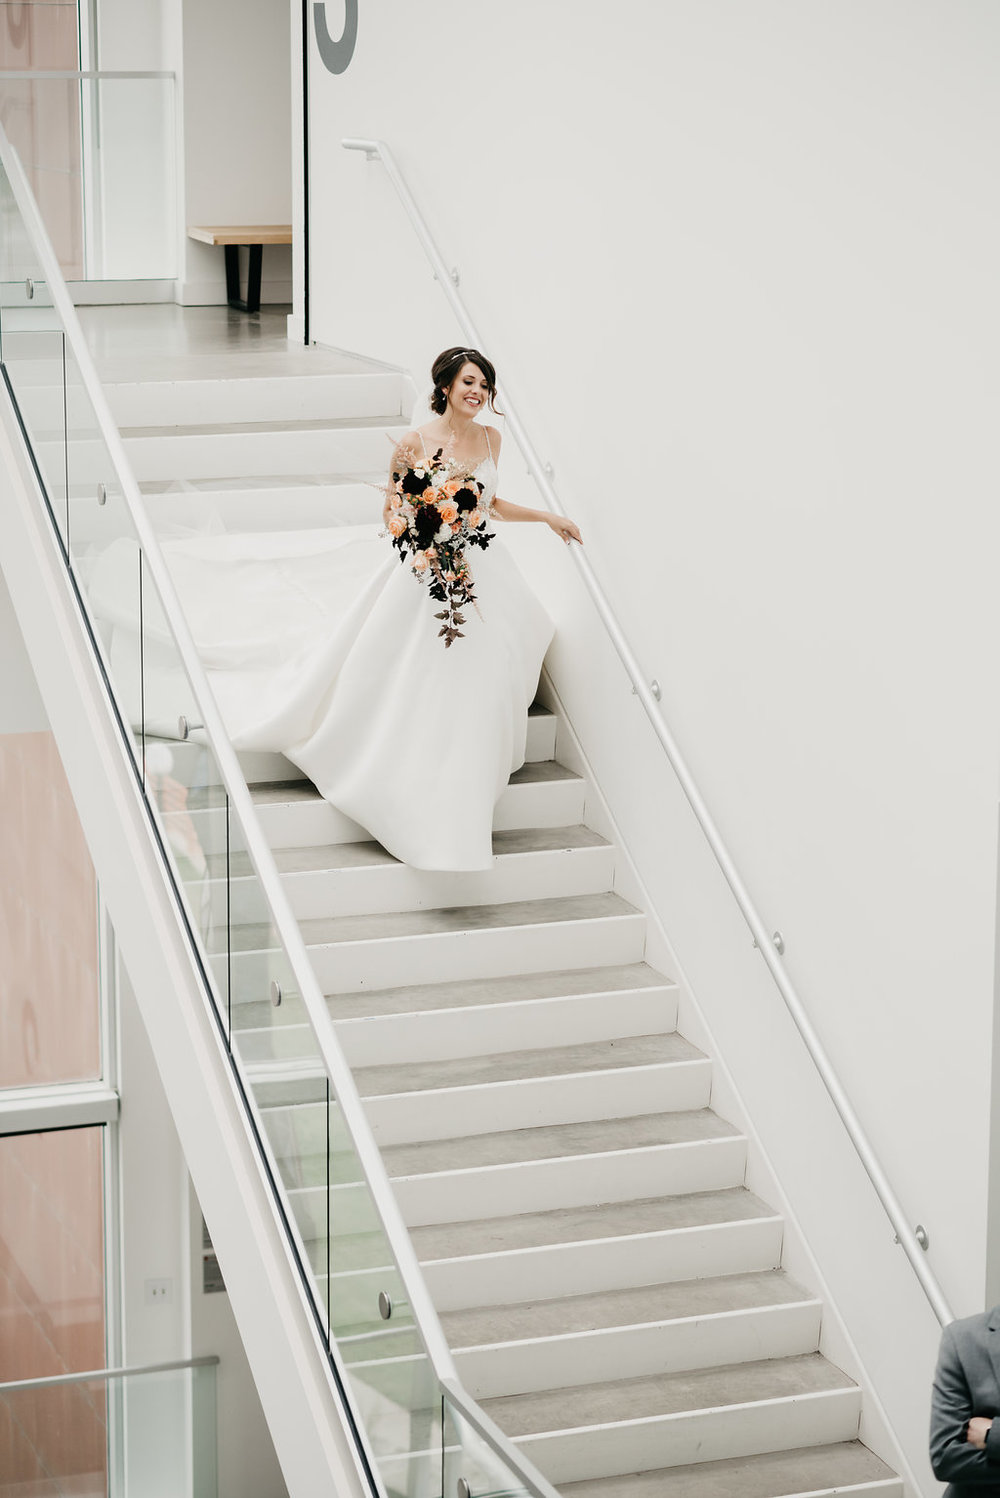 Mpls weddng photography-276.jpg